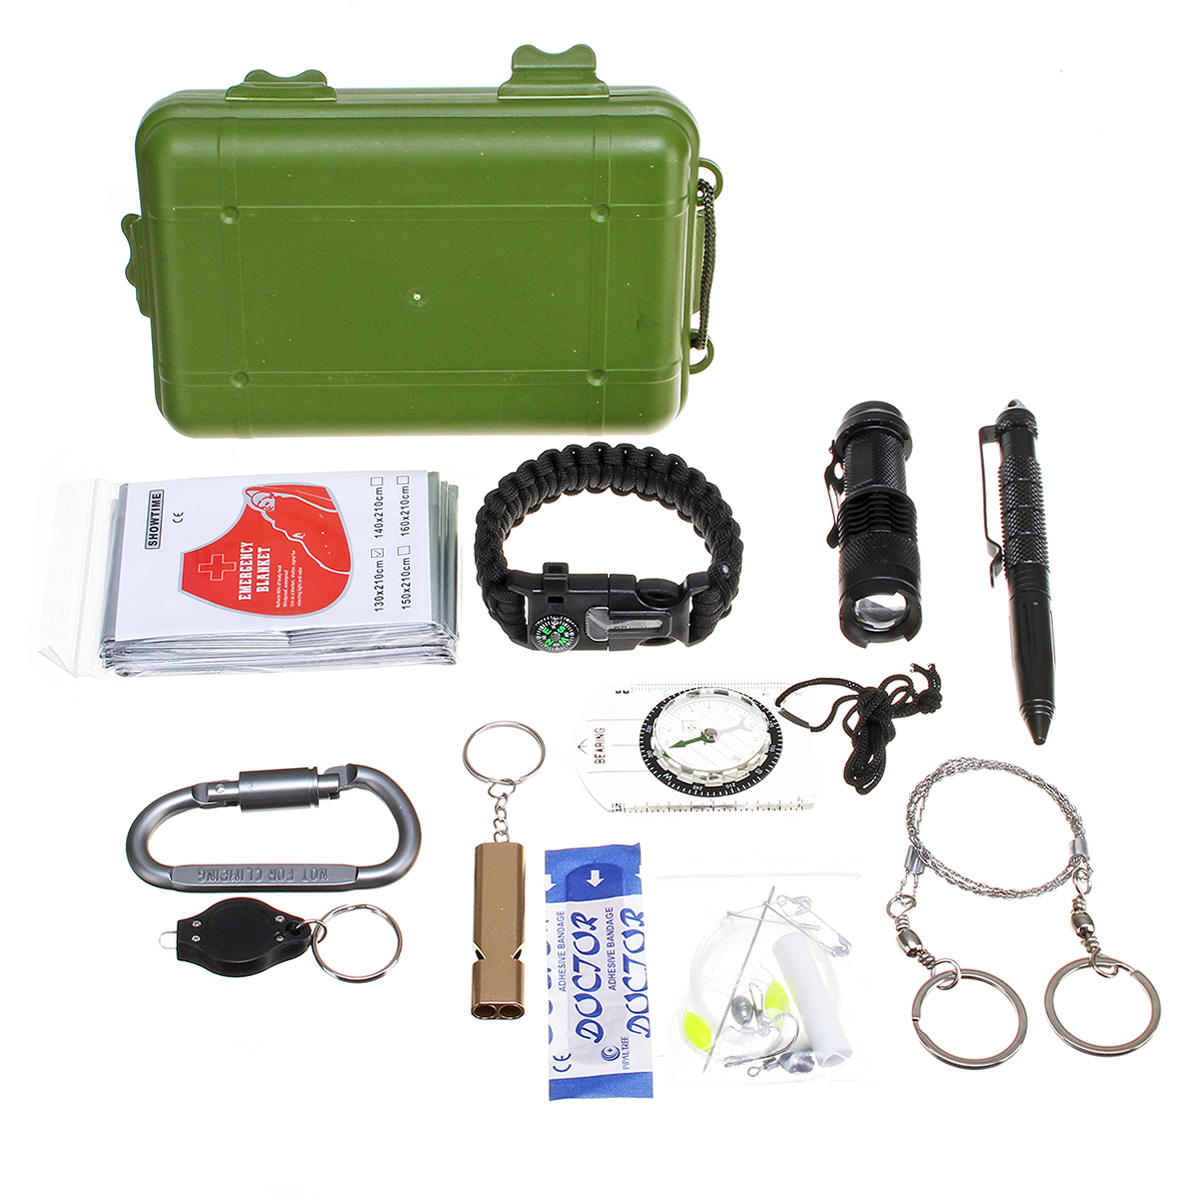 27 in 1 SOS Emergency Camping Survival Equipment Tools Kit Outdoor Gear Tactical Tool Whistle Flashlight